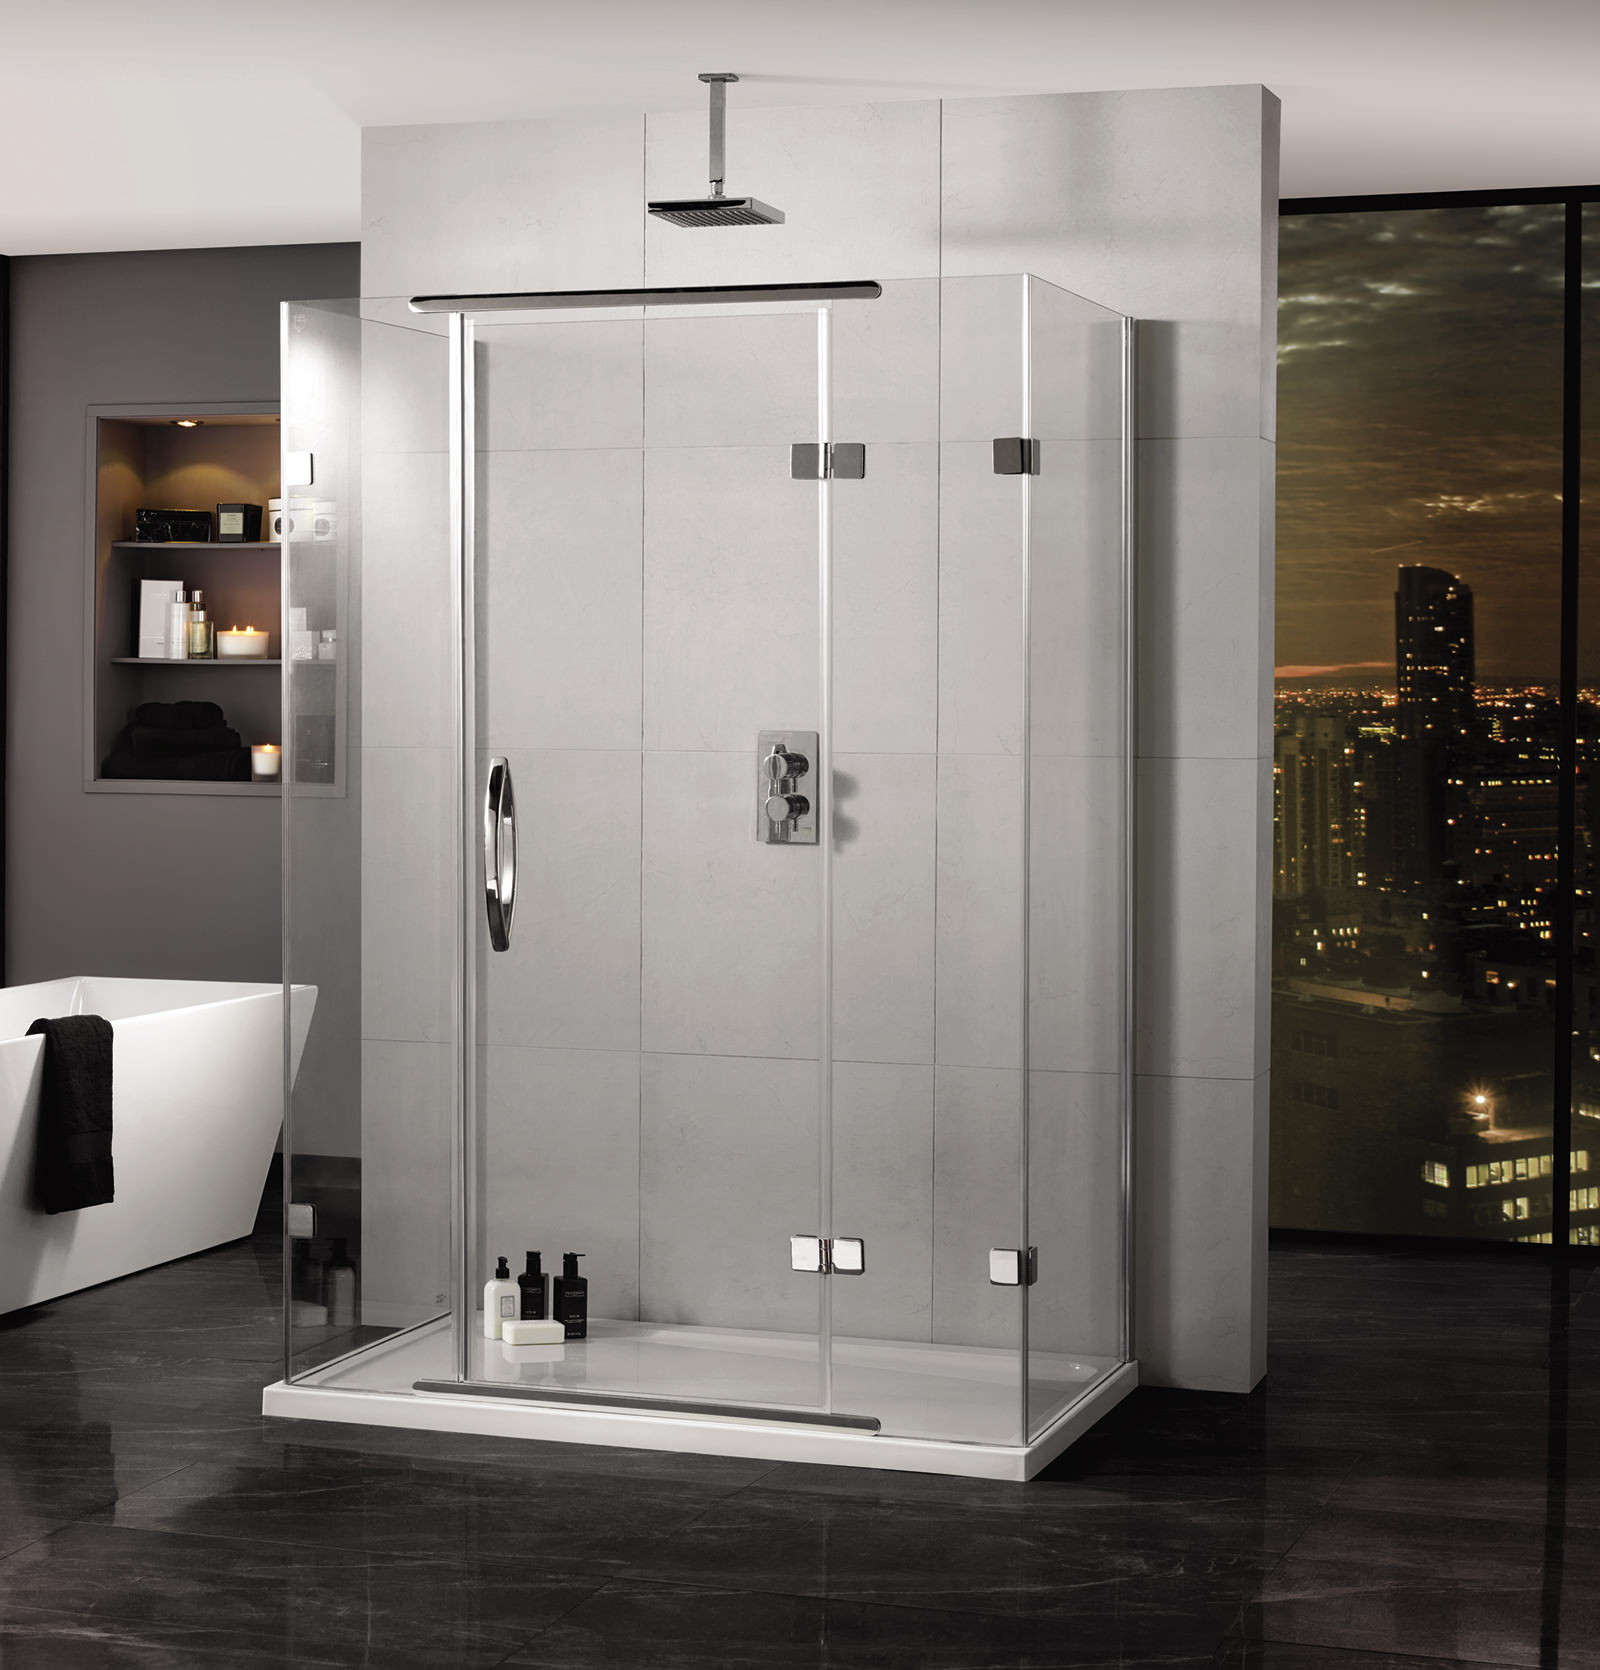 Inline 900 x 800mm 3 sided hinged shower door and side panels aquadart inline 900 x 800mm 3 sided hinged shower door and side panels vtopaller Gallery